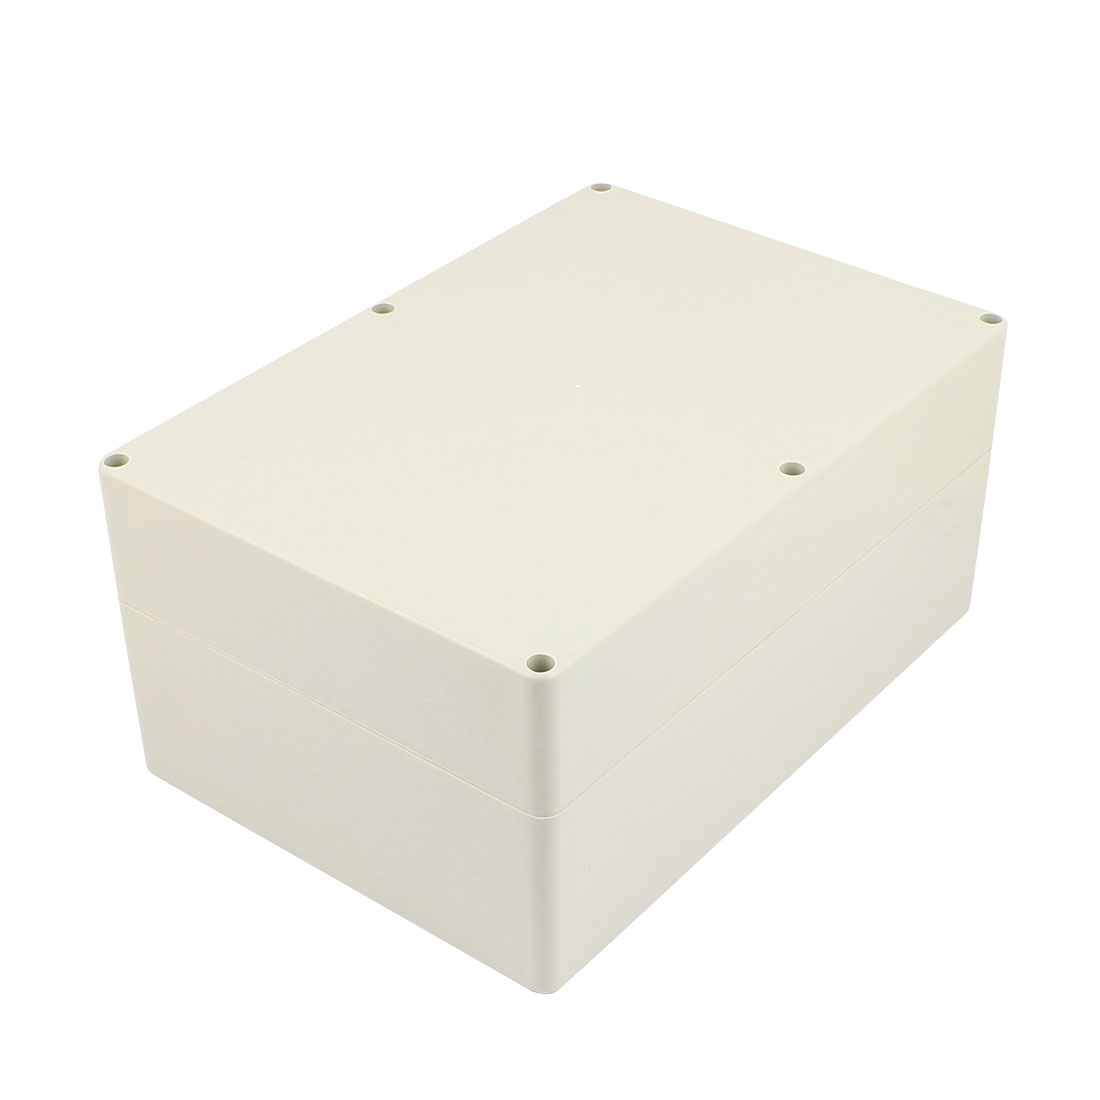 Dustproof IP65 Junction Box DIY Terminal Connection Enclosure Adaptable 263mm x 182mm x 125mm